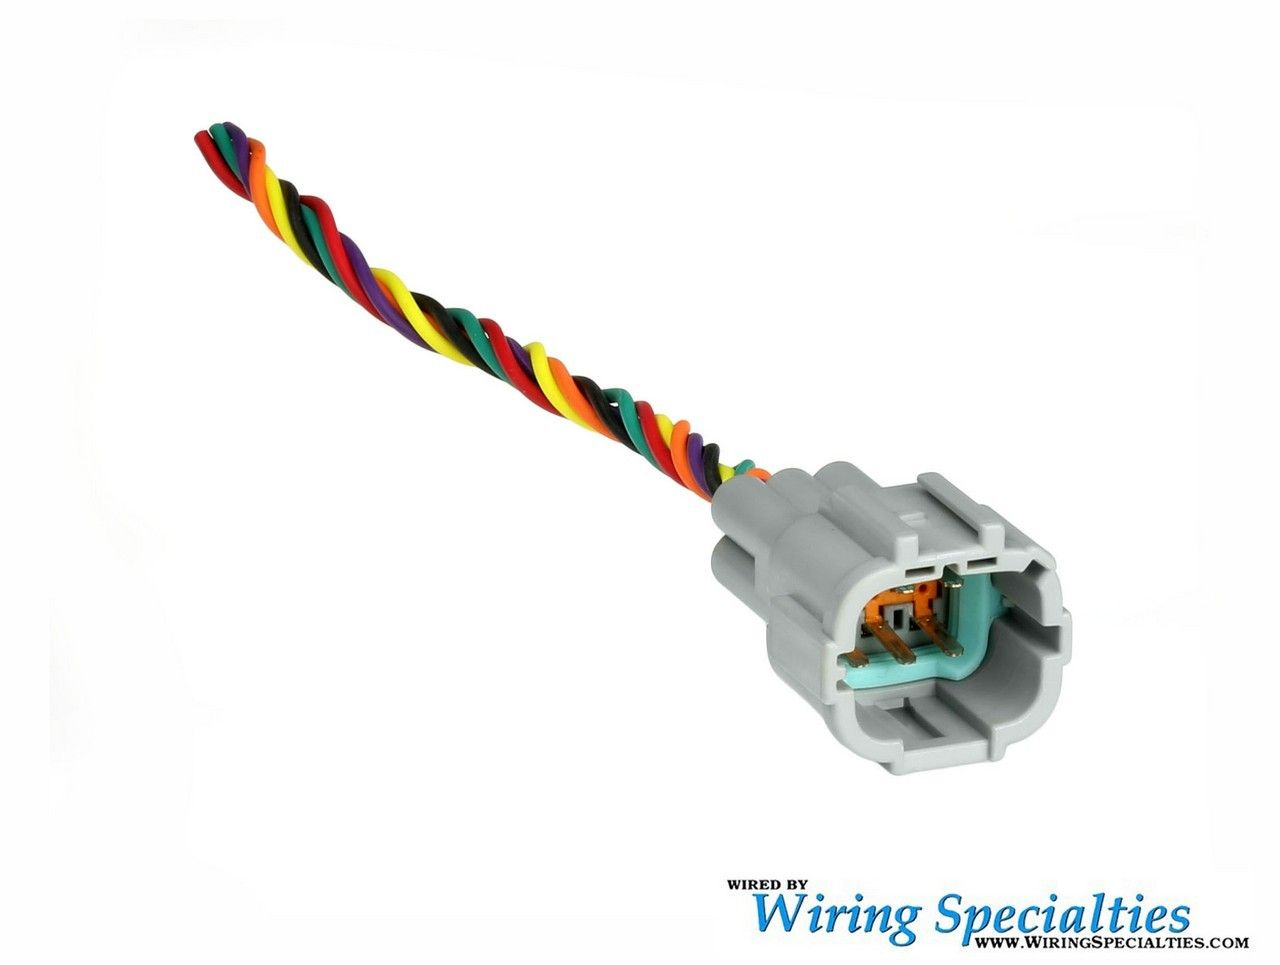 hight resolution of wiring specialties halogen headlight connector w pigtails 6 pin male350z headlight wiring harness wire